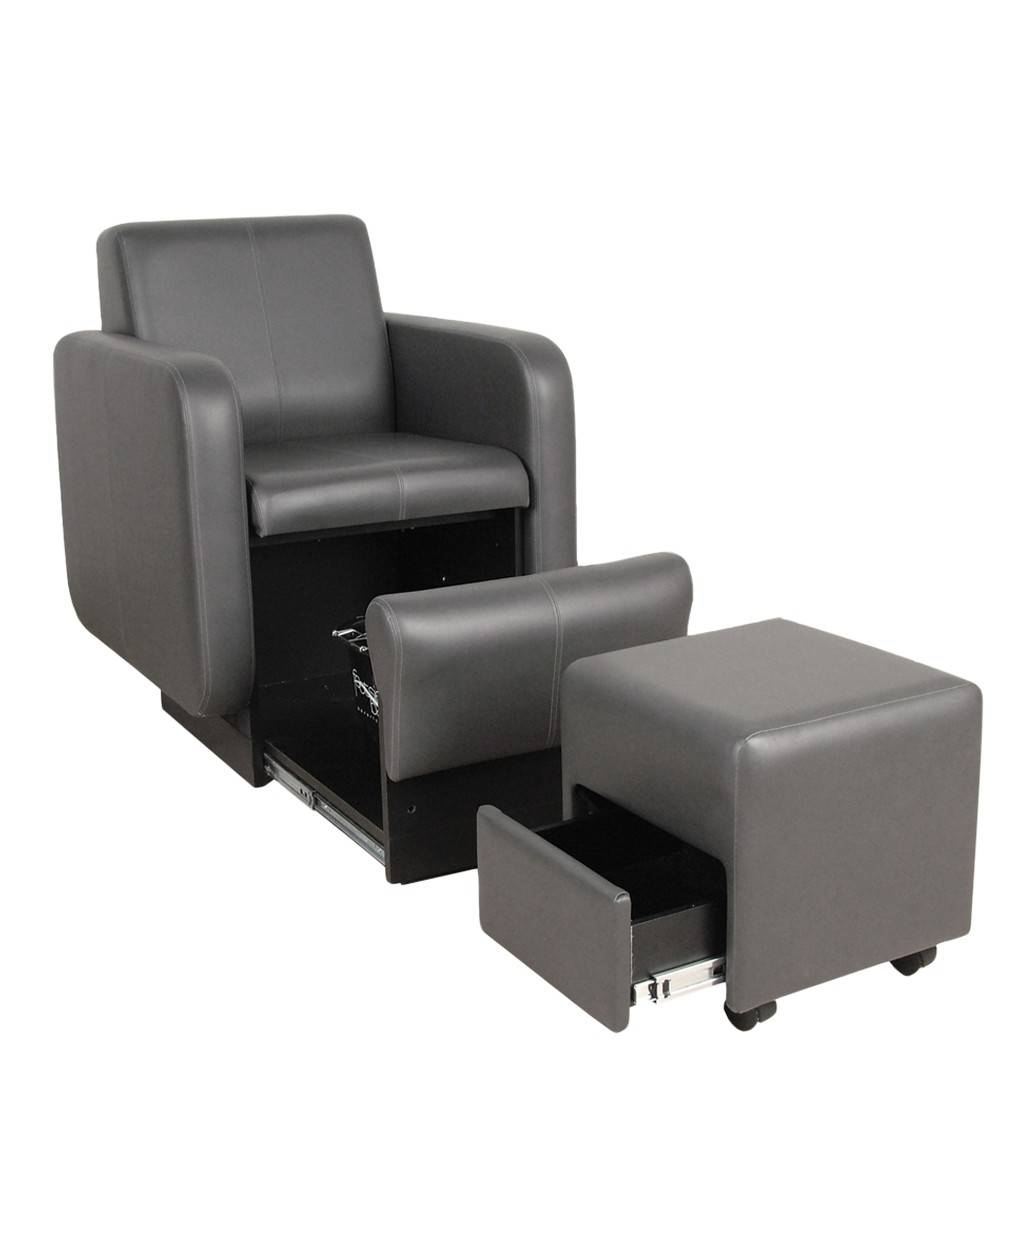 2555 Blush Club Pedicure Chair W/ Footsie Bath For Sofa Pedicure Chairs (Gallery 9 of 15)